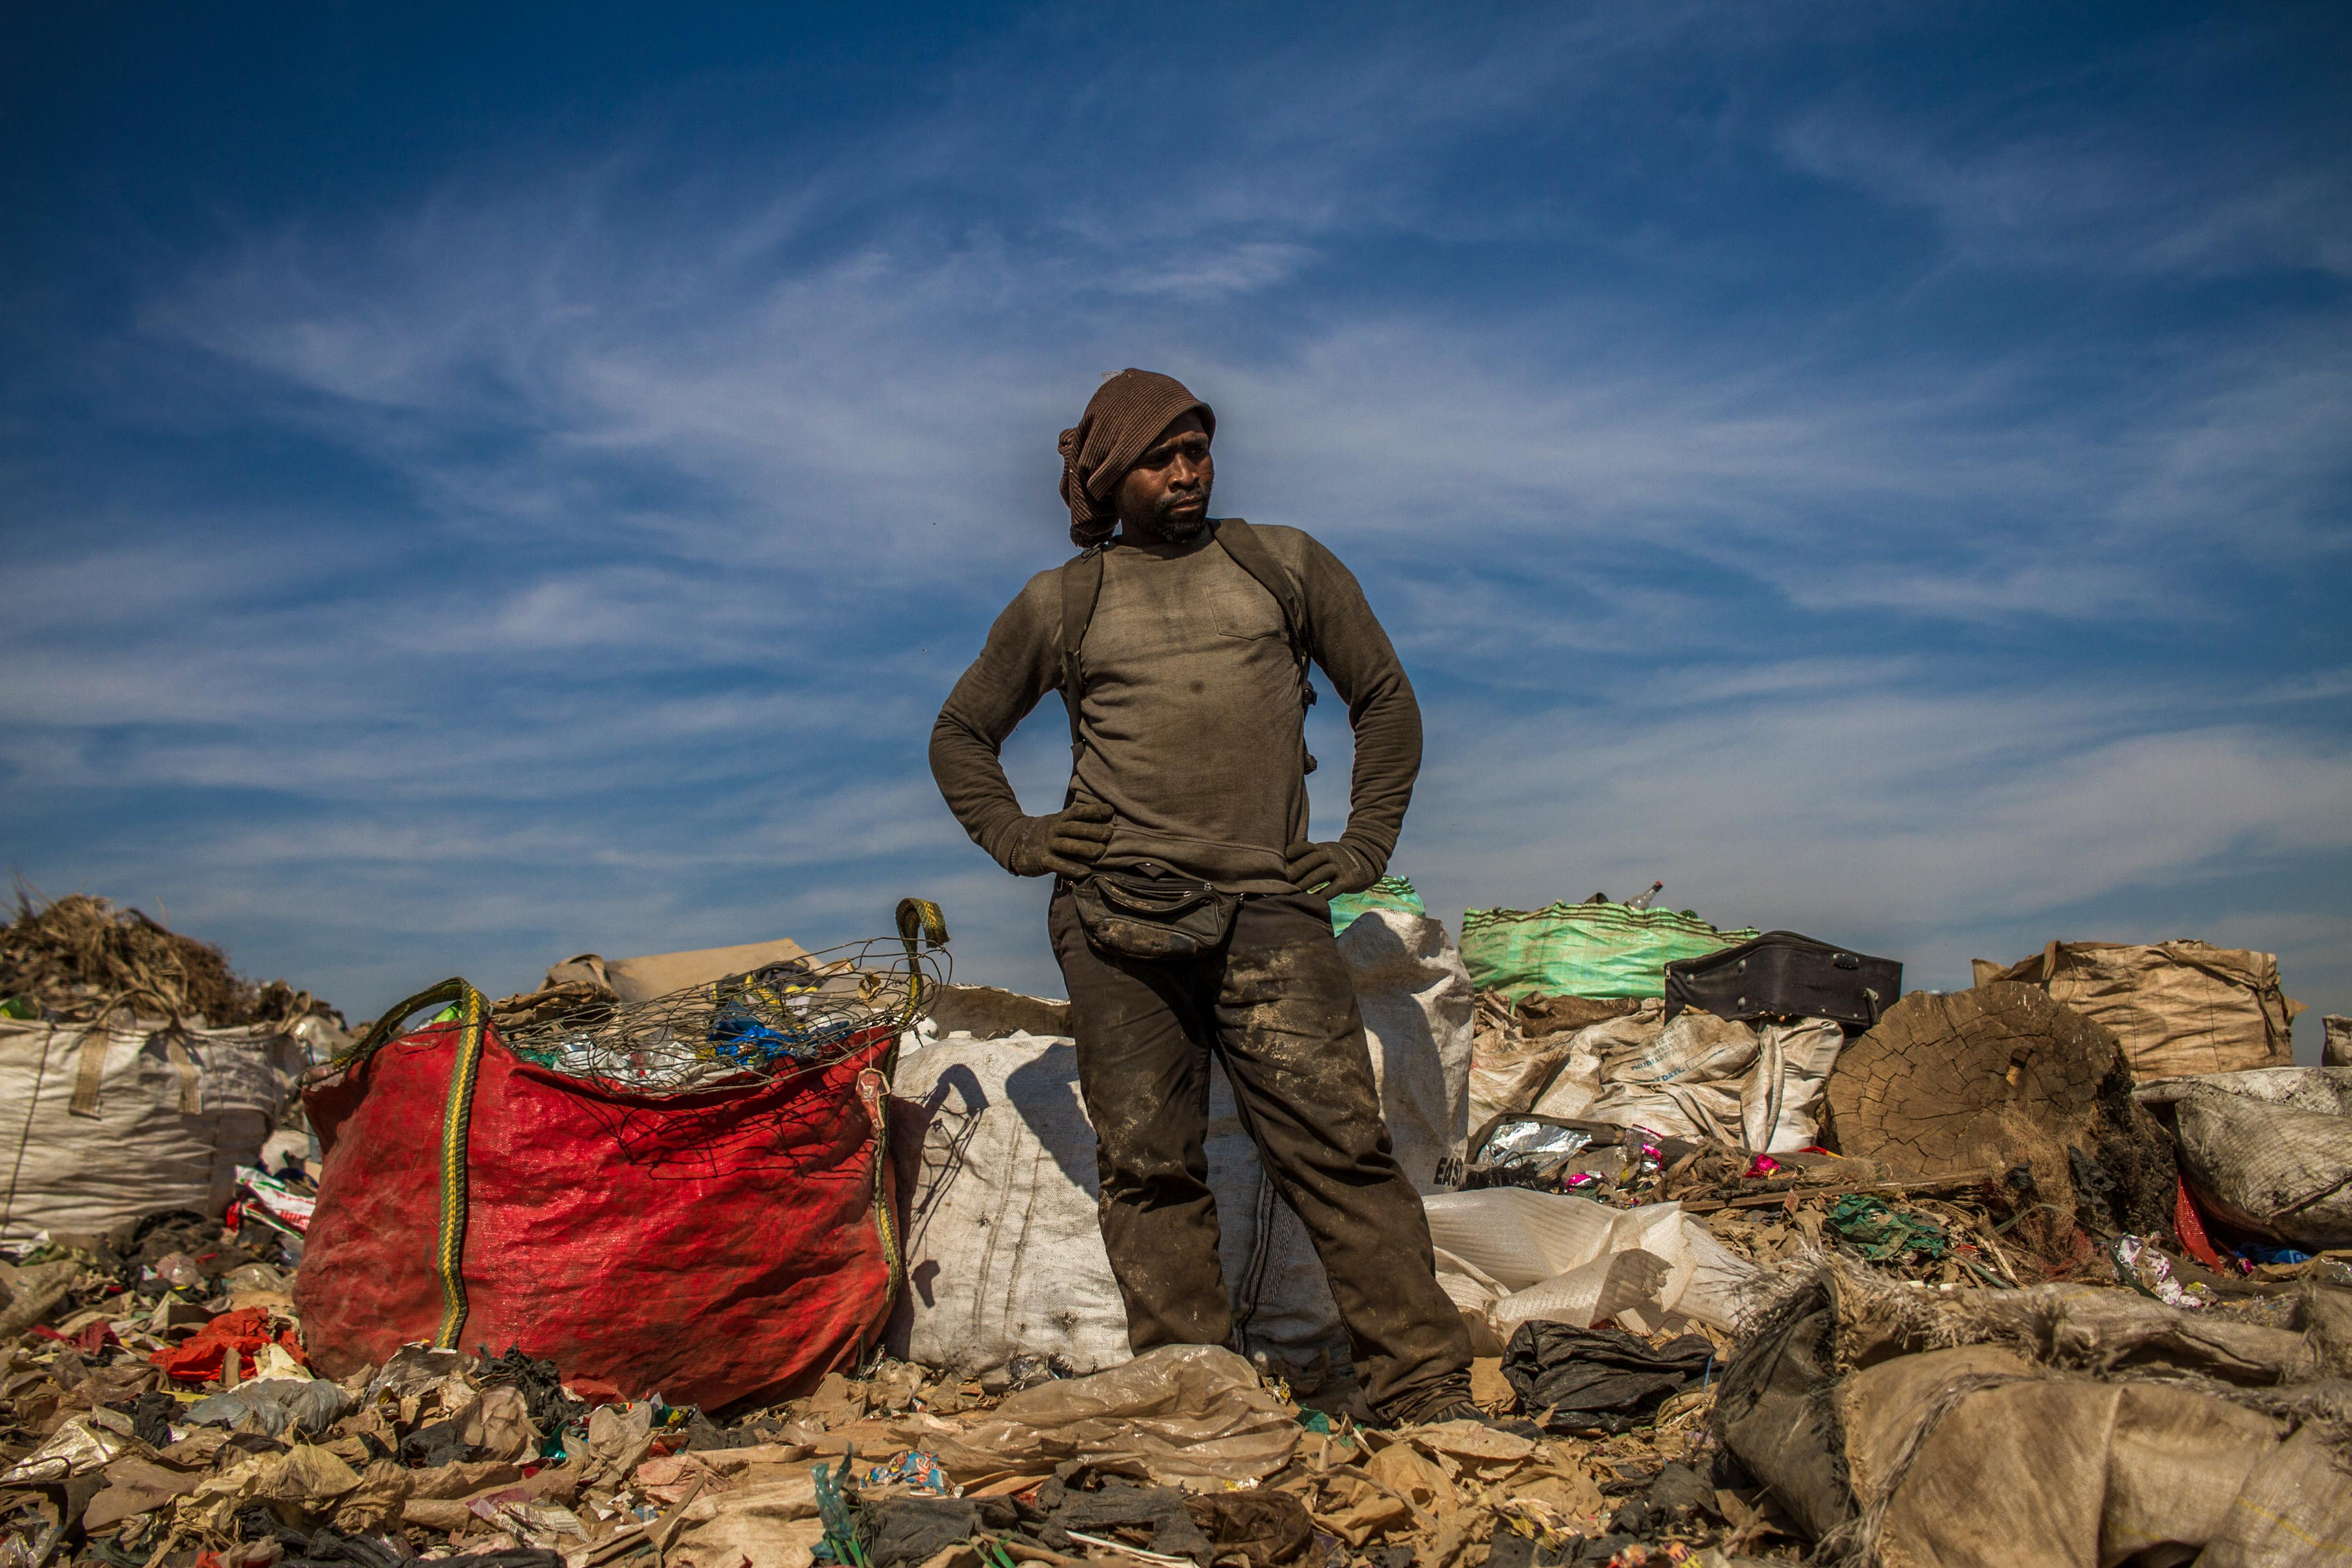 18 July 2019: Xolani Gcina came to Pietermaritzburg from Lesotho in search of work, but ended up sorting and selling waste from the New England Road dump in Pietermaritzburg.